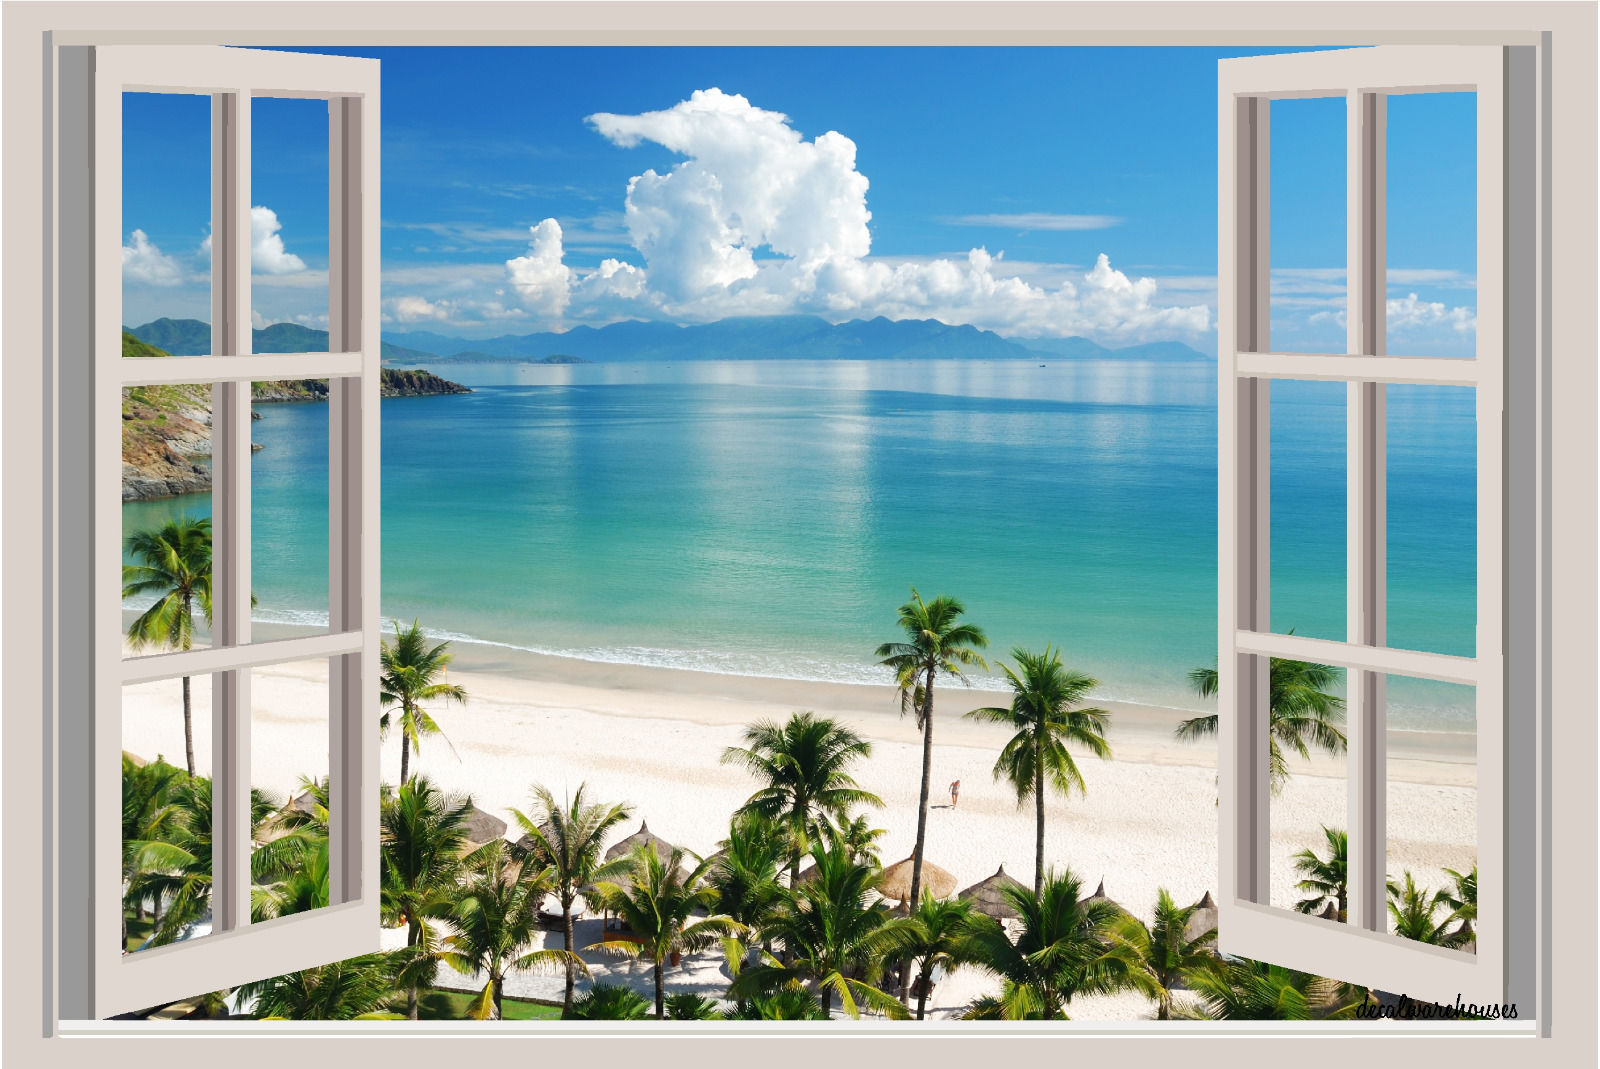 Beach ocean palm trees window view repositionable color wall sticker mural 3 ft for Beach view wall mural